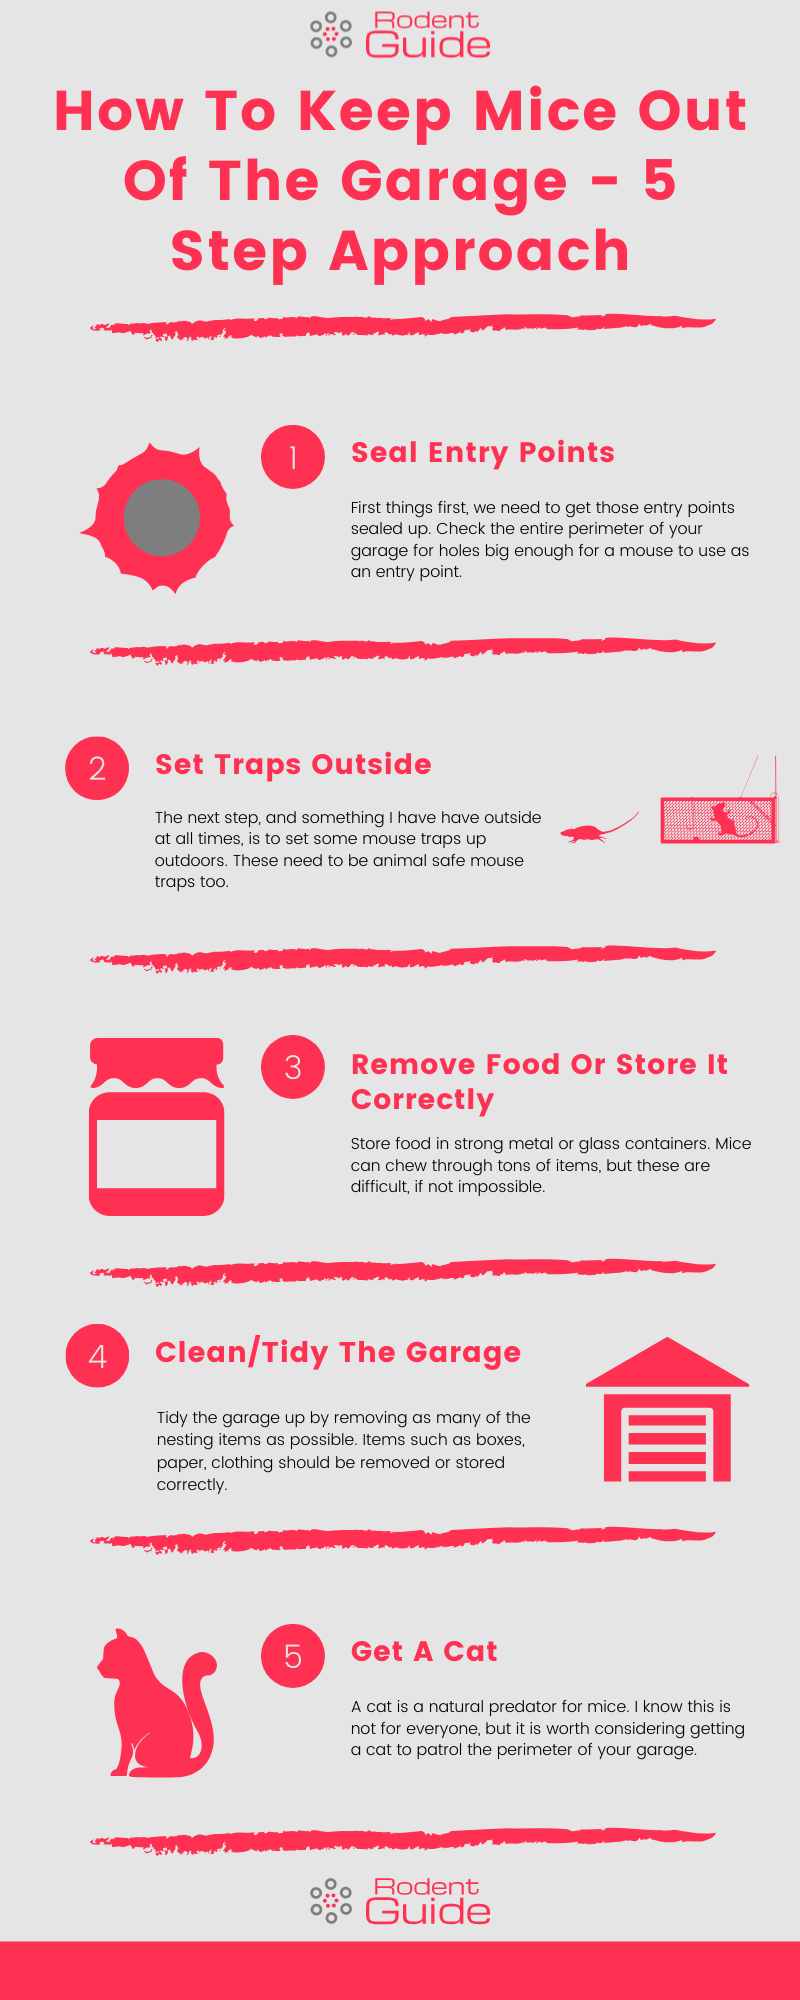 How To Keep Mice Out Of The Garage - 5 Step Approach Infographic